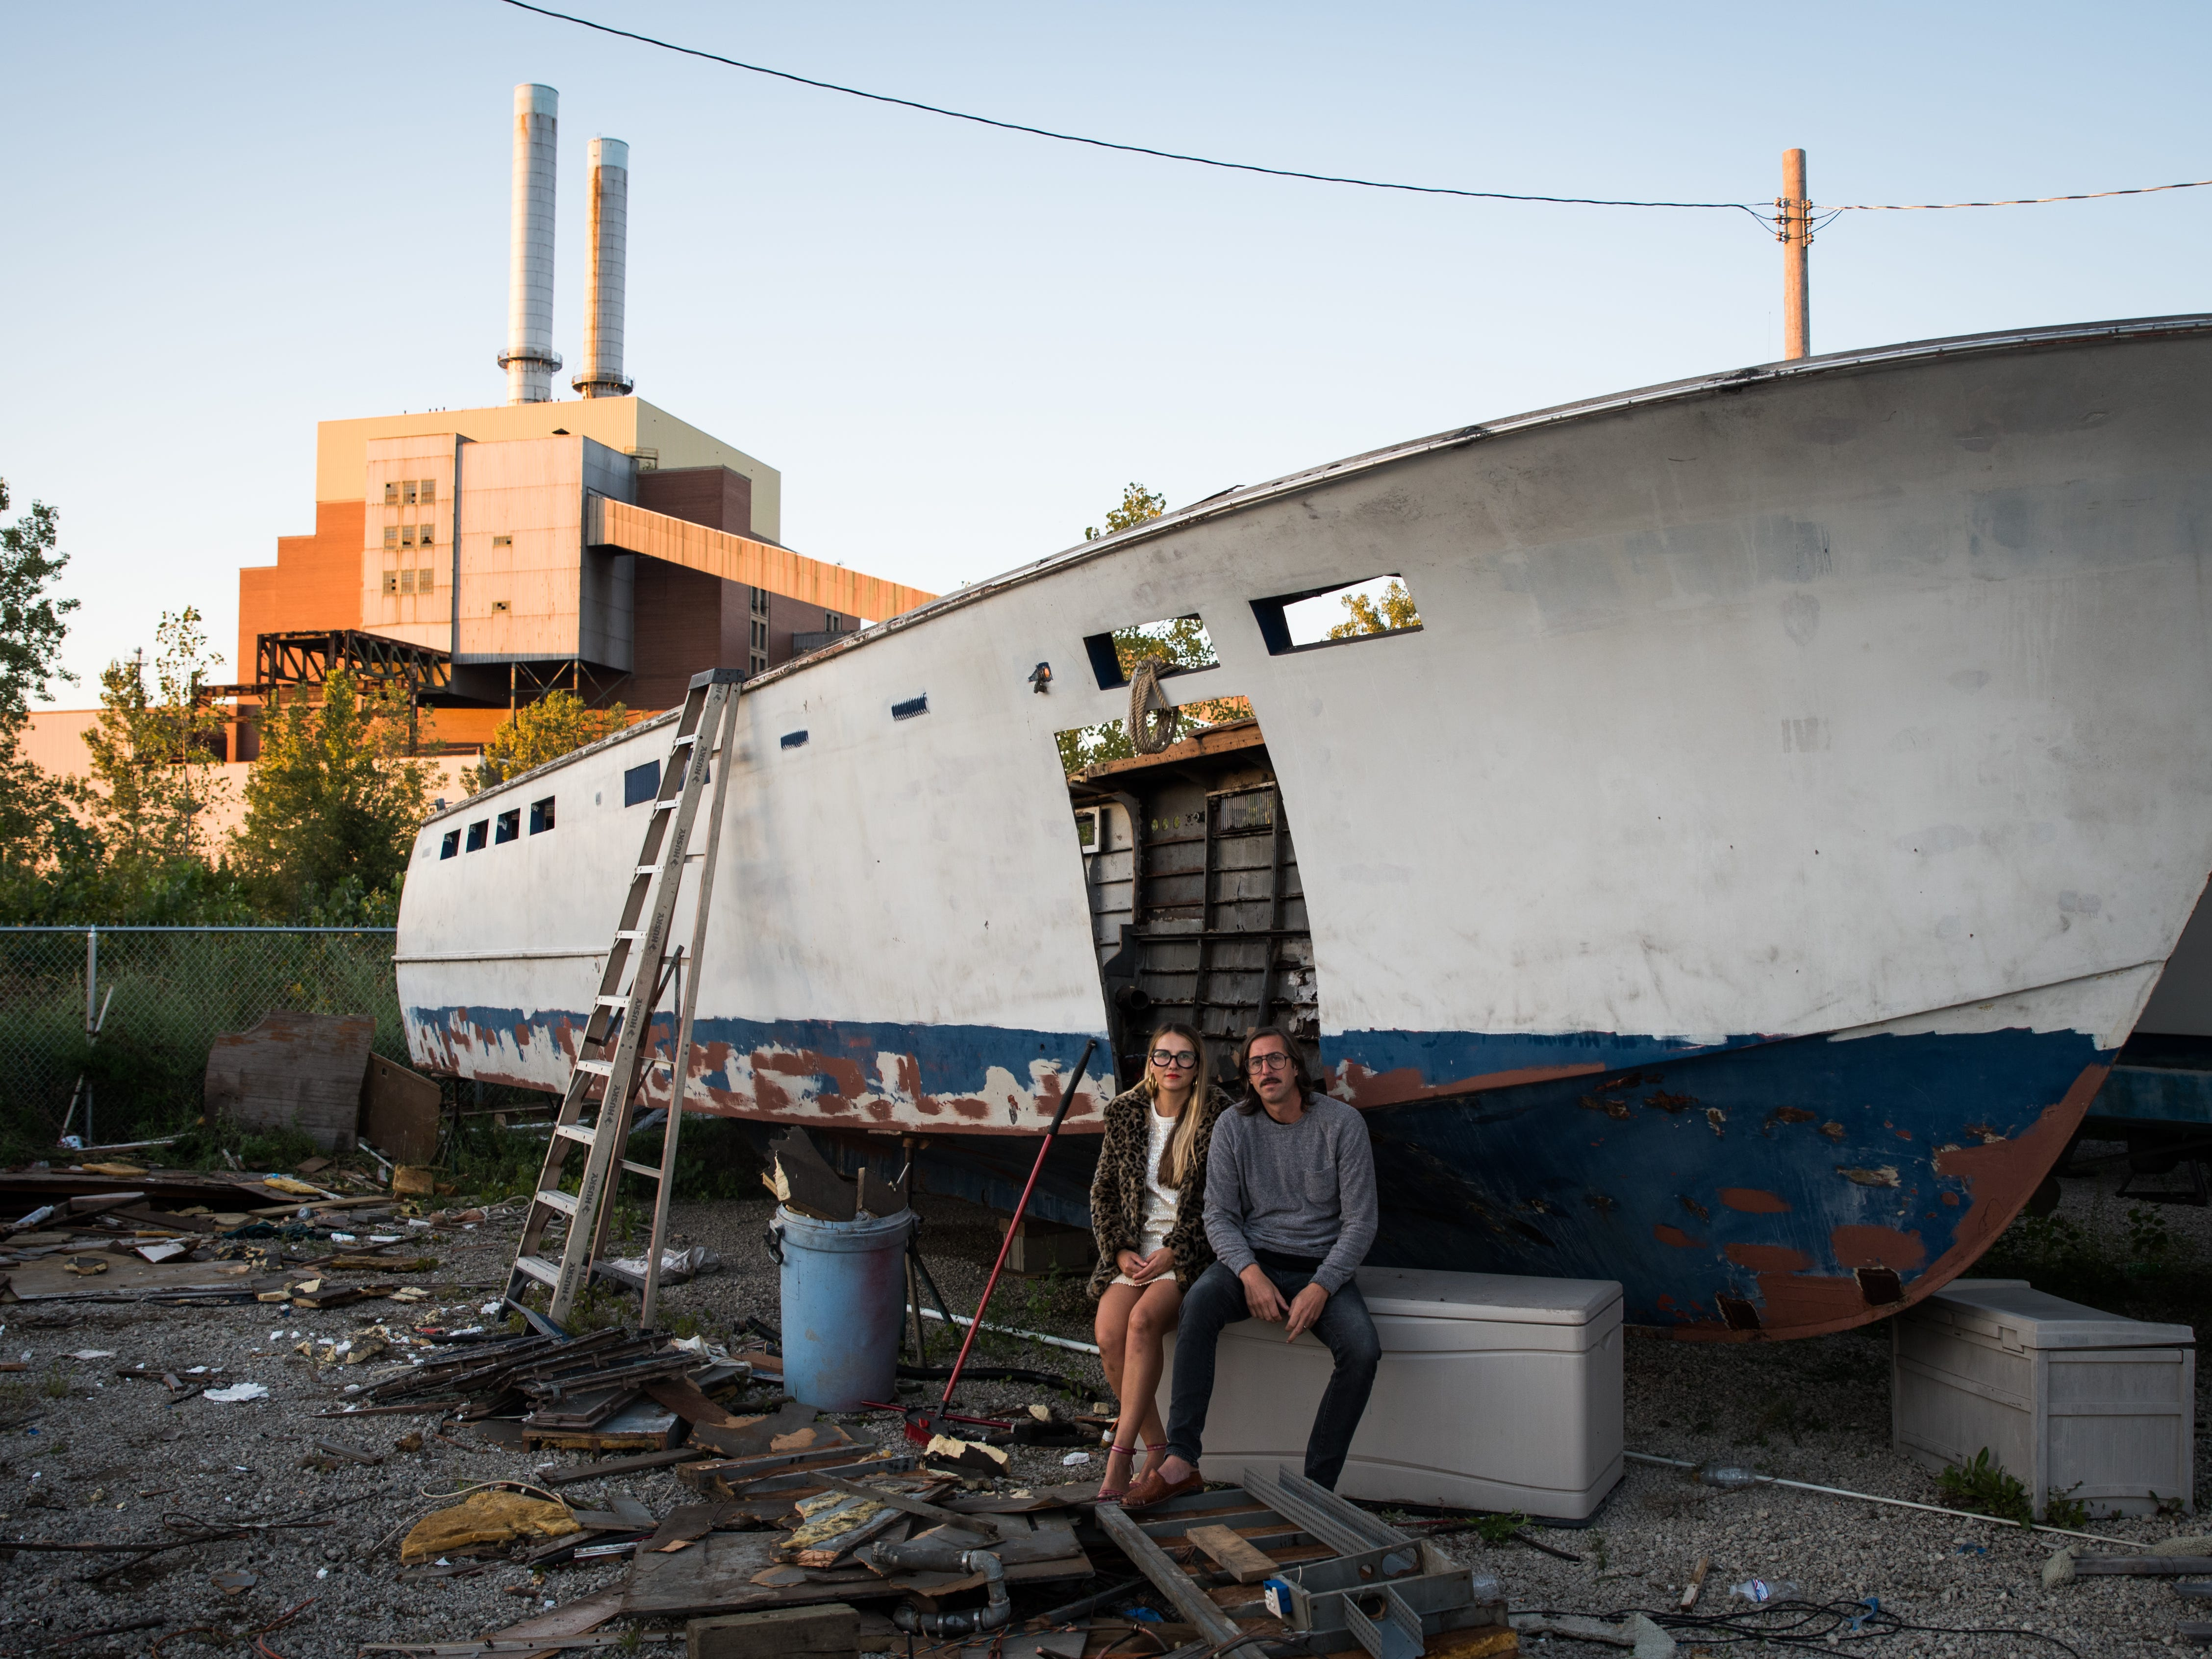 Conceptual artists Dorota and Steve Coy relax in front of an old ship on the site, one of the largest riverside tracts eligible for redevelopment. The DTE plant was shut down when nuclear power plant Fermi 2 rendered the coal-powered facility obsolete.